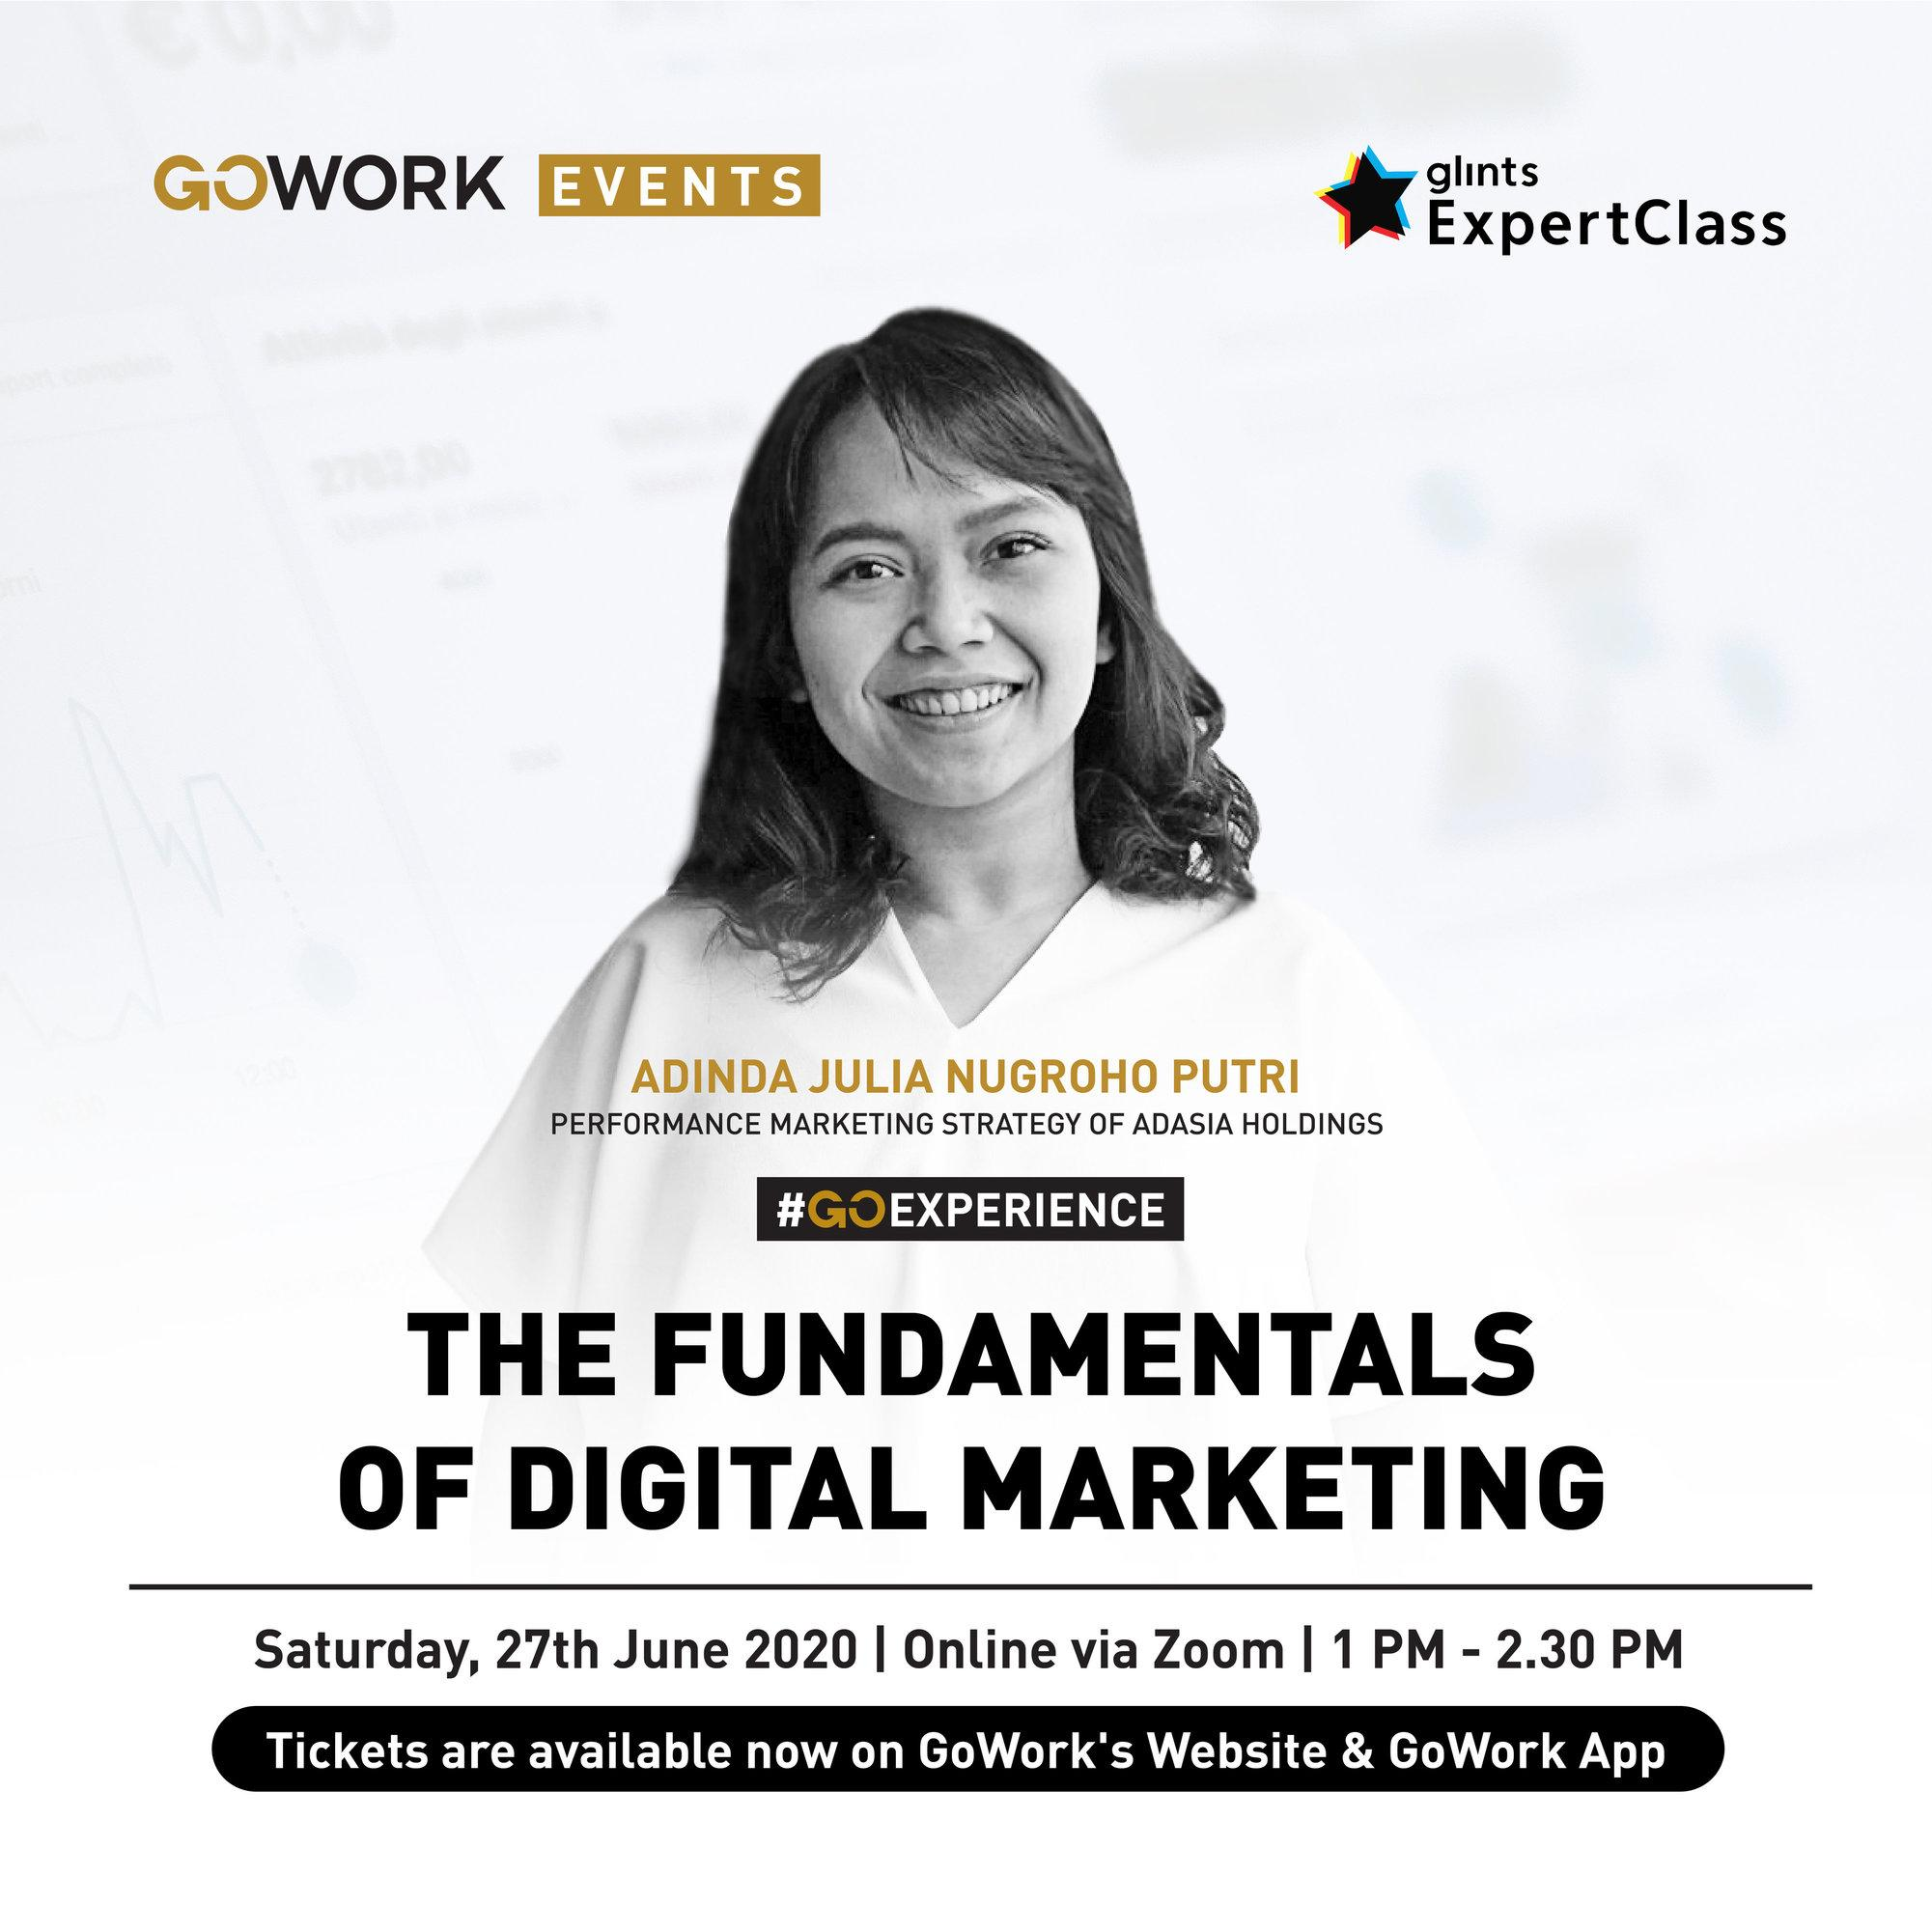 The Fundamentals of Digital Marketing